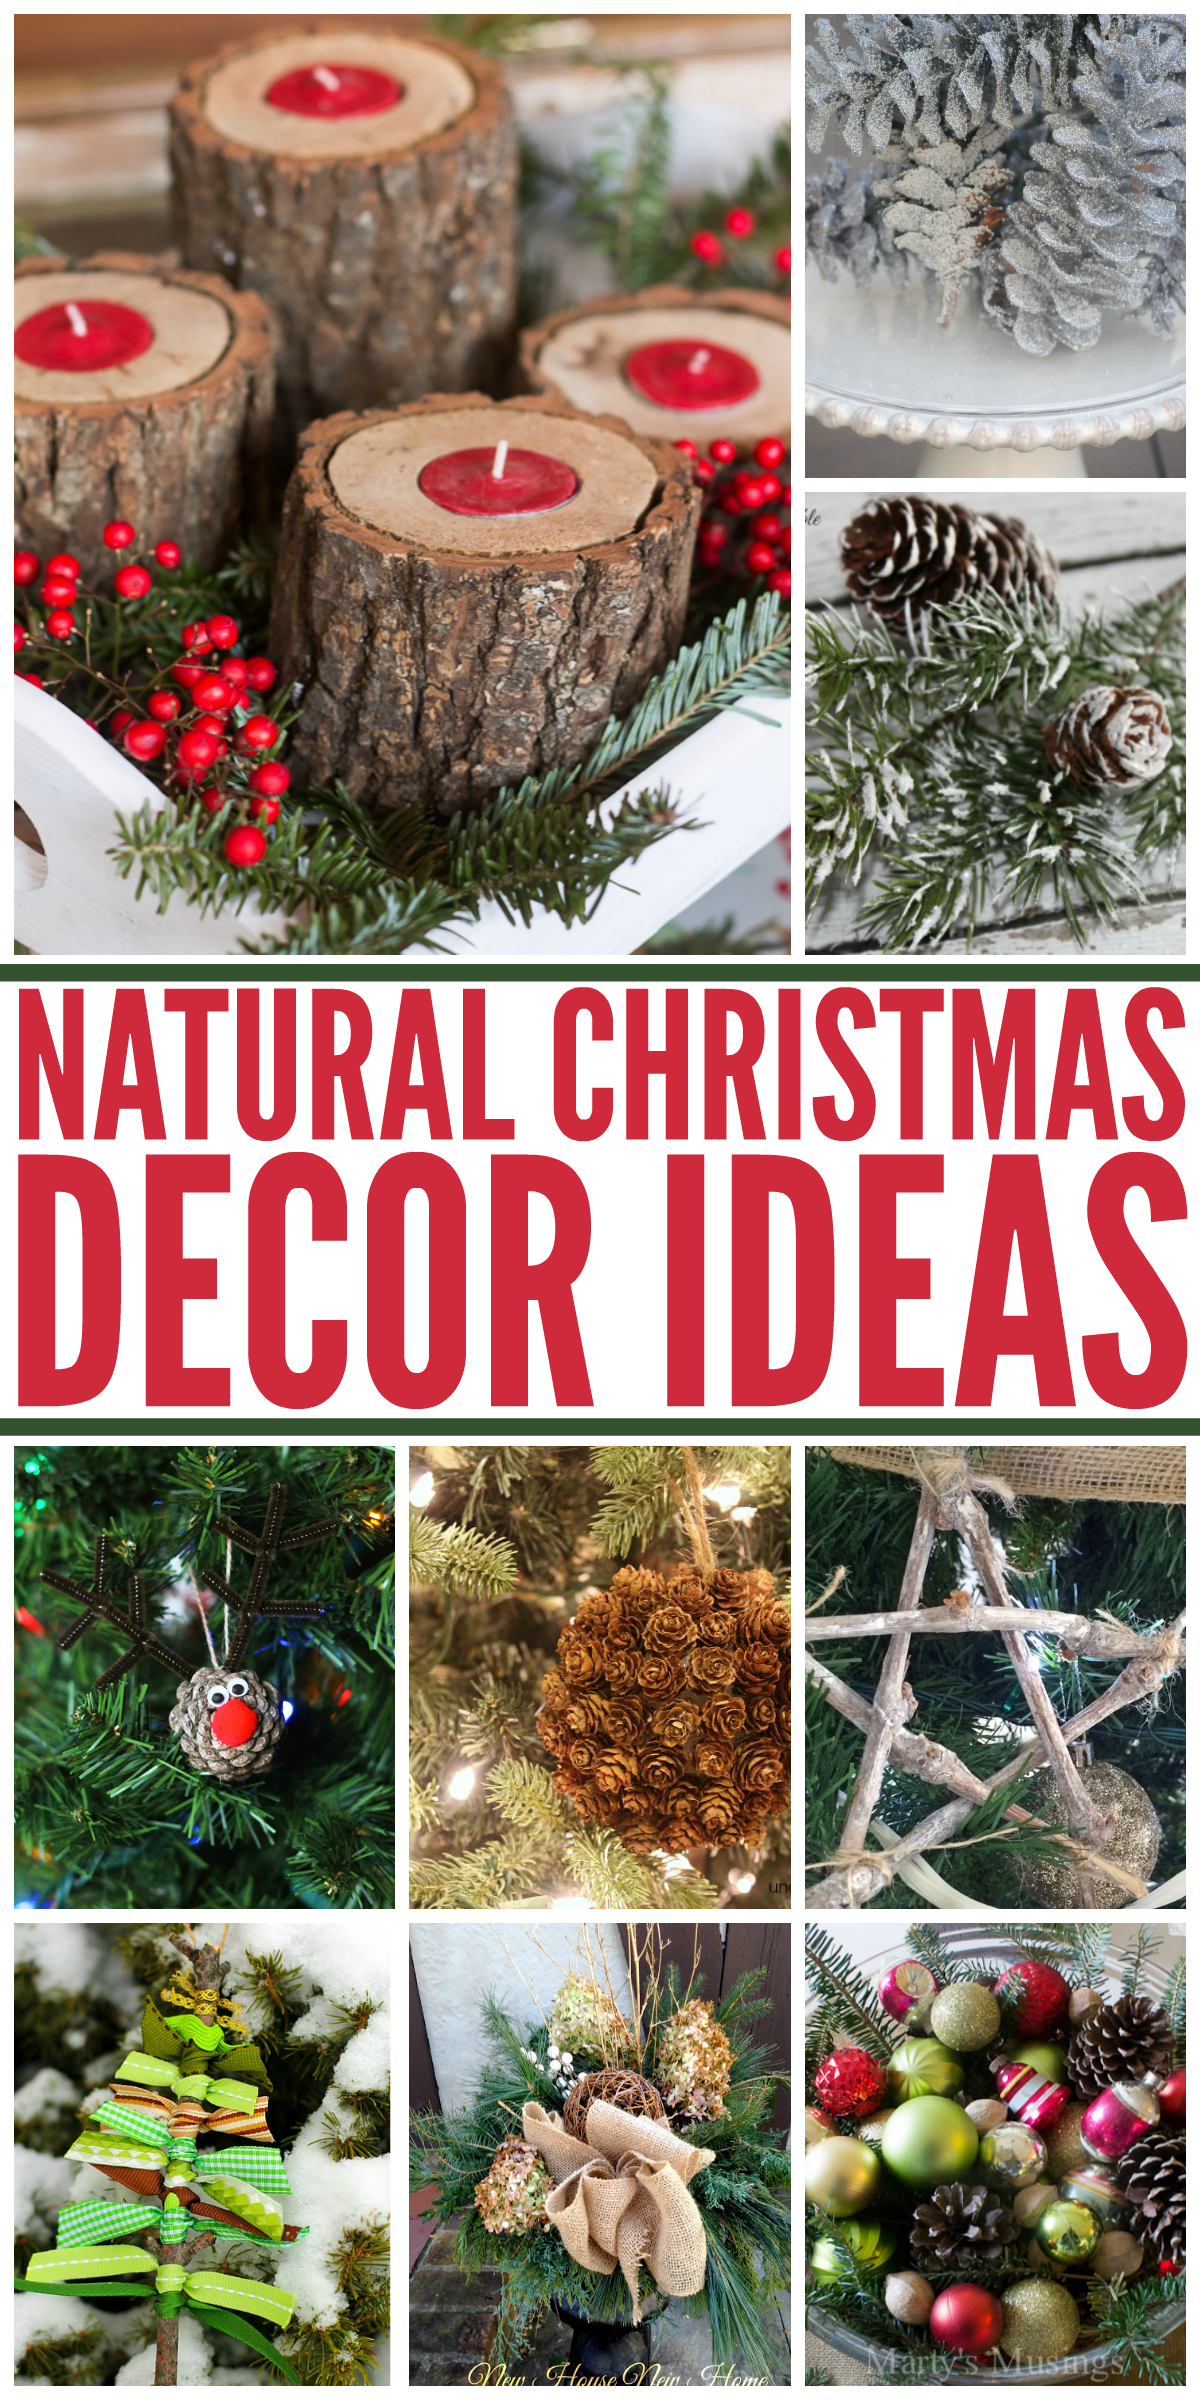 Wait, FREE Christmas decorations? Yes please! Love these ideas for FREE, natural